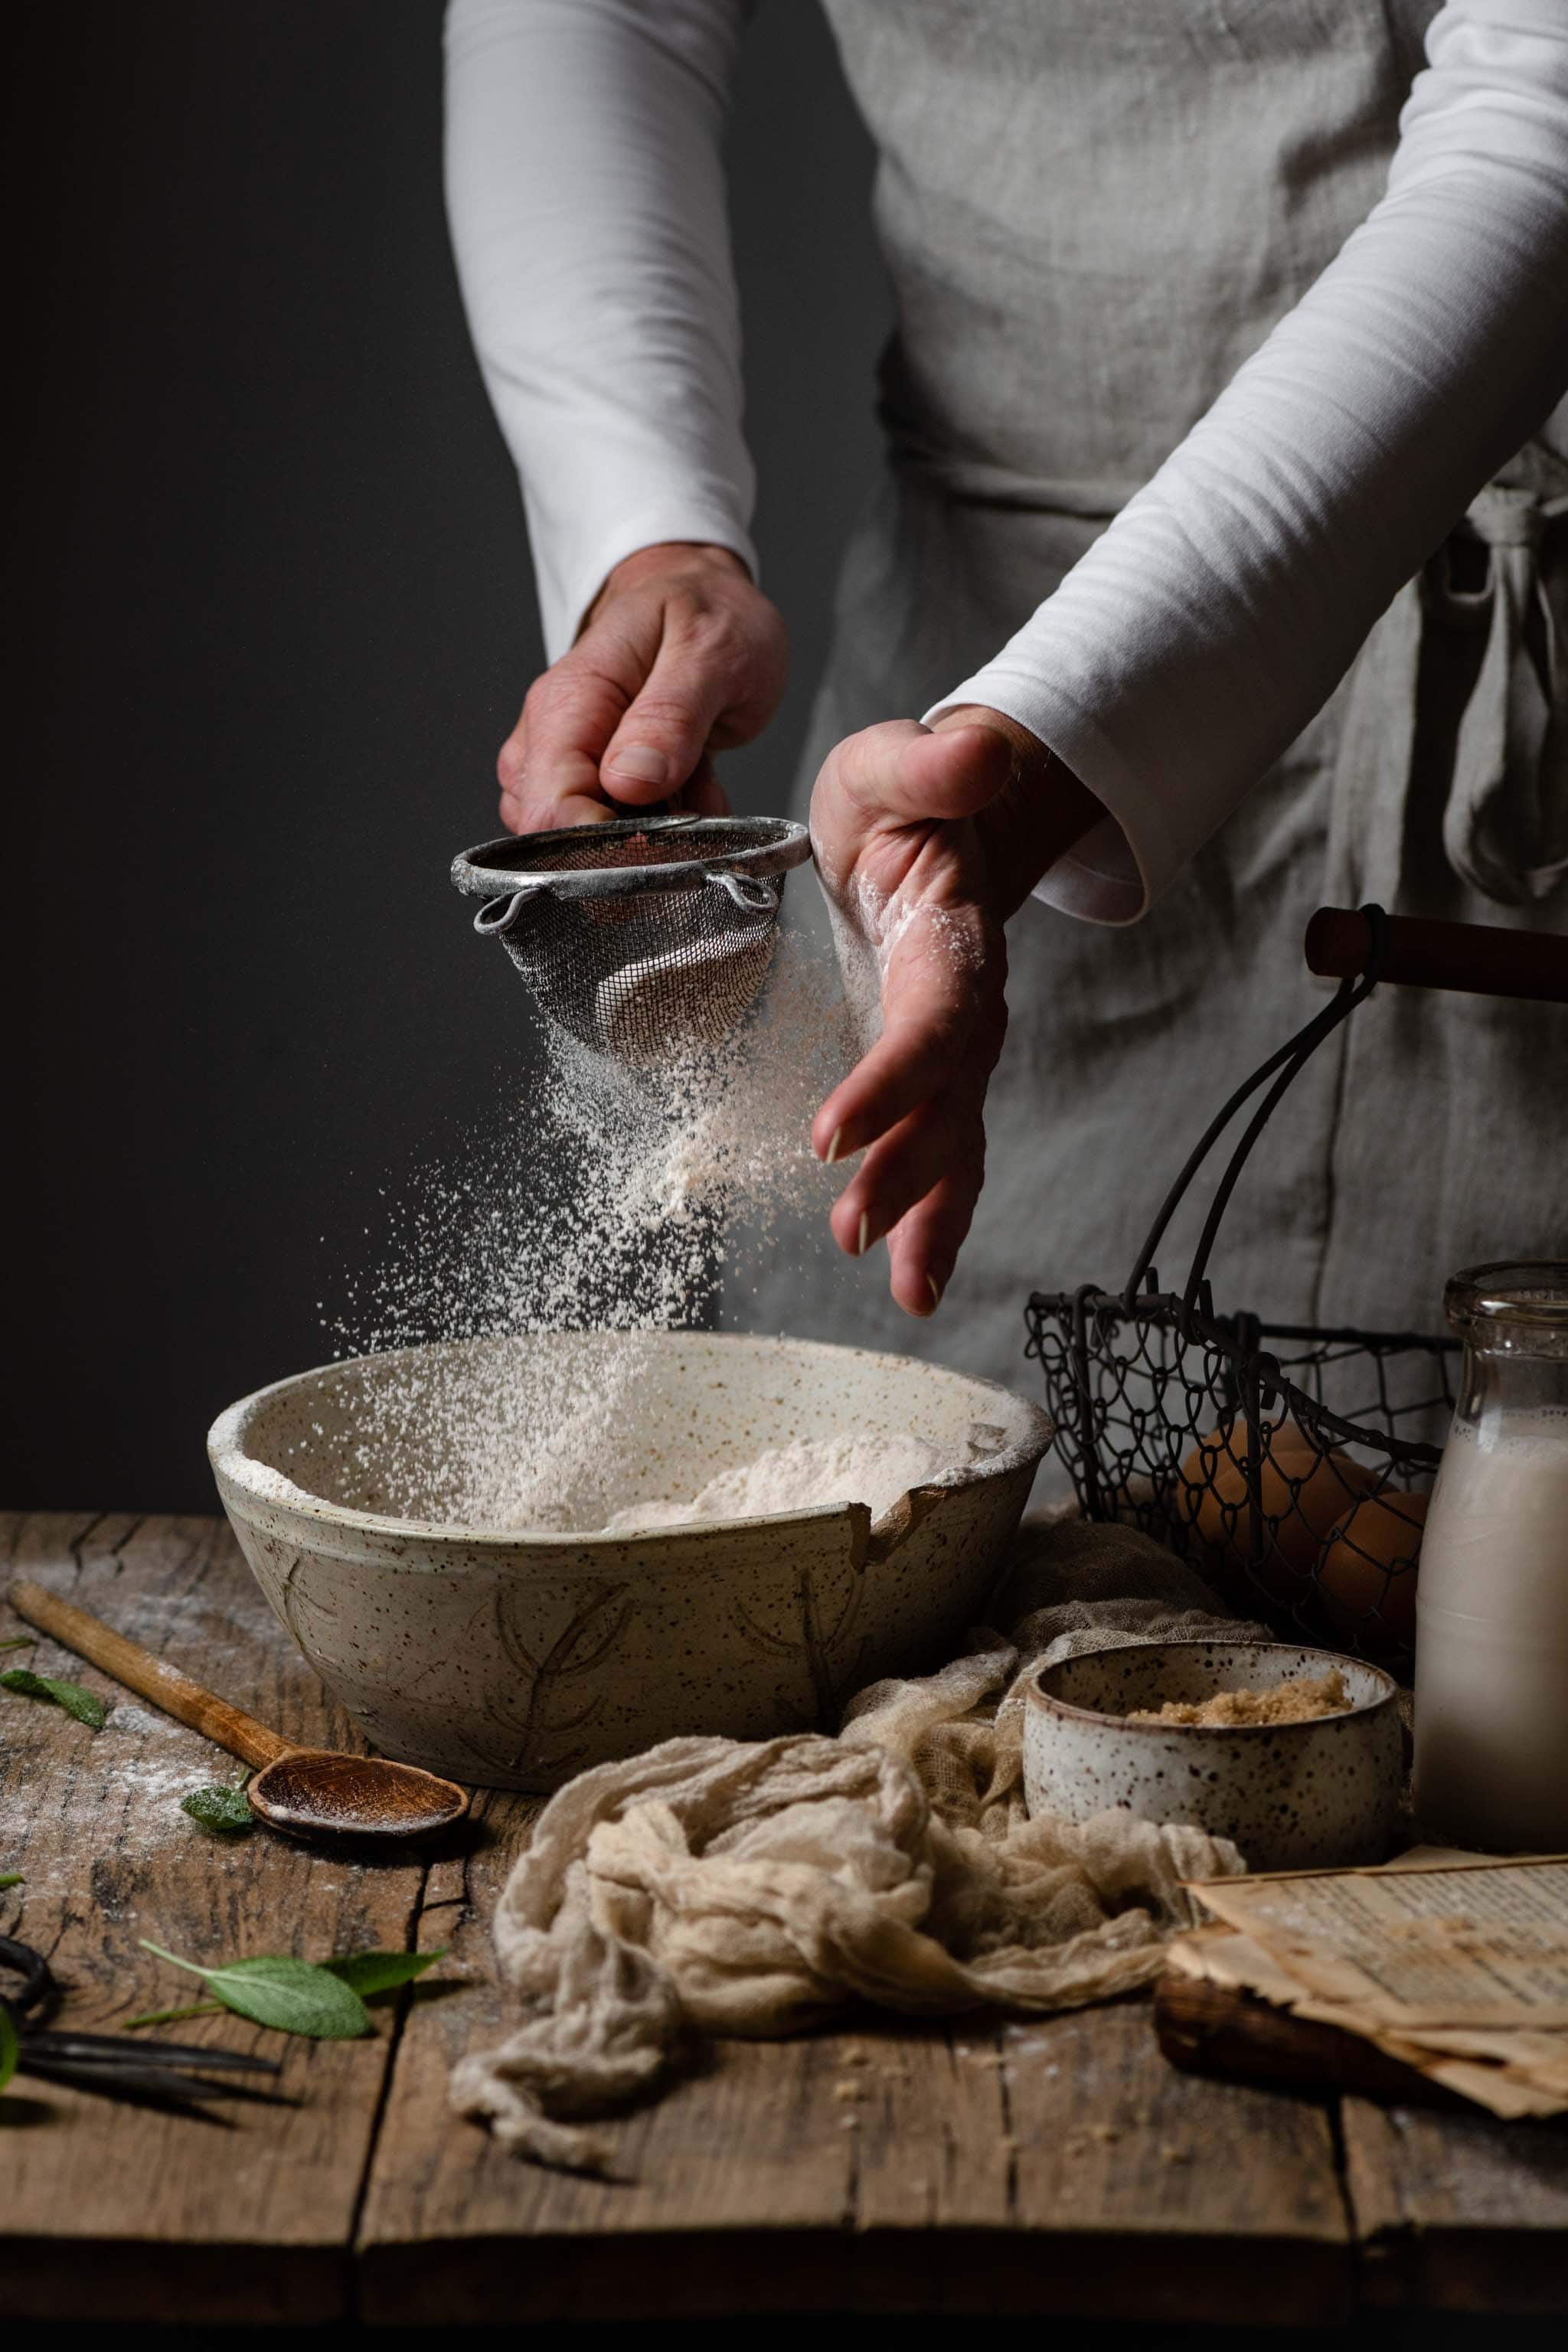 Food Photography of baker sifting flour